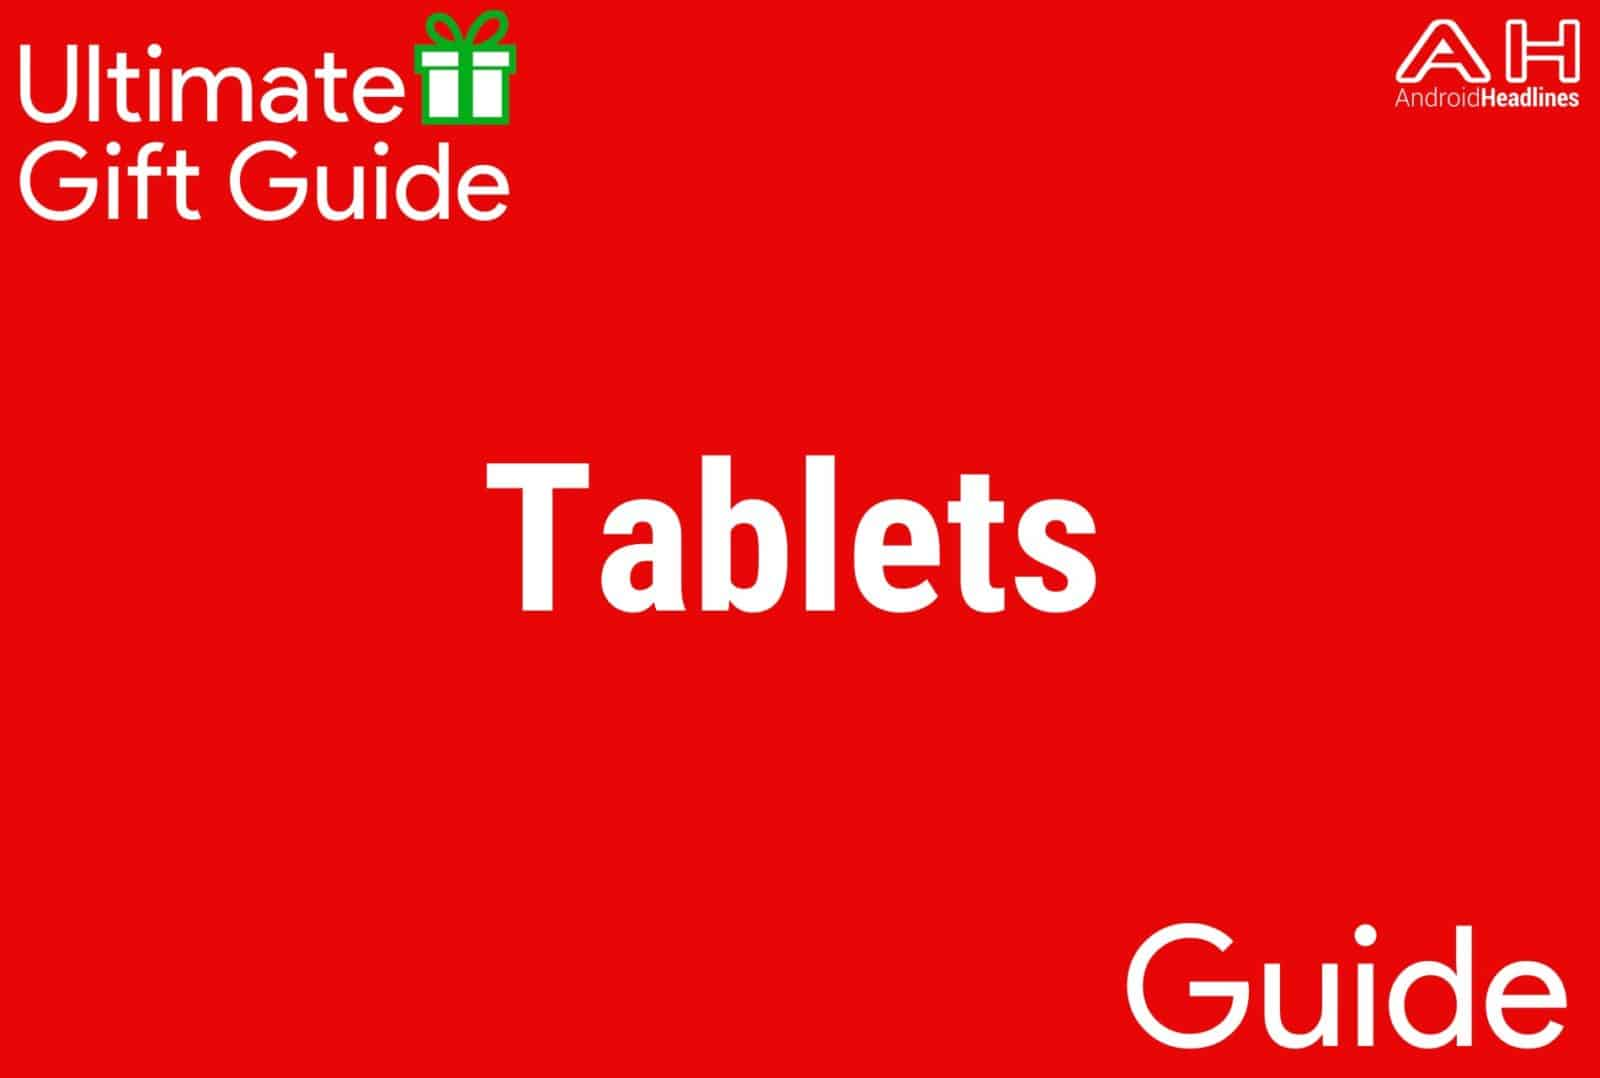 Android Tablets - Gift Guide 2015-2016